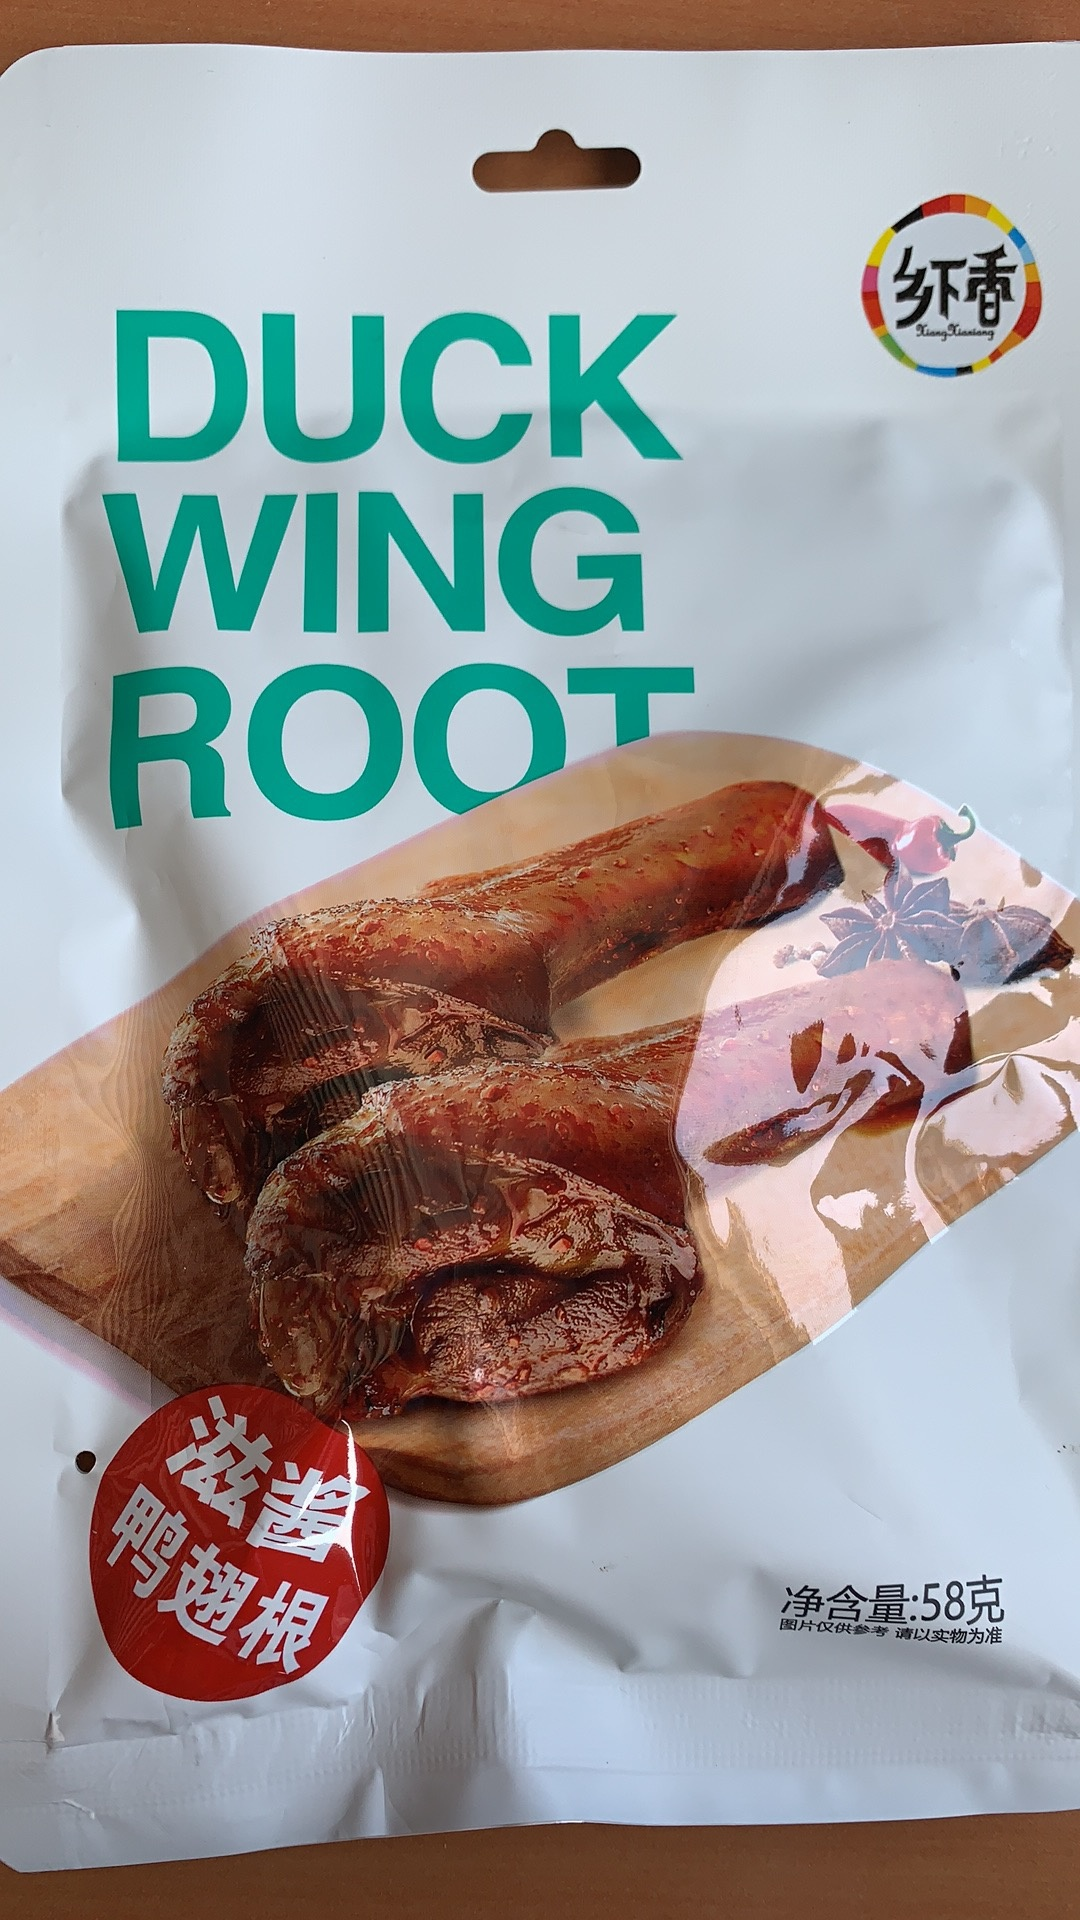 Duck wing root(58g)